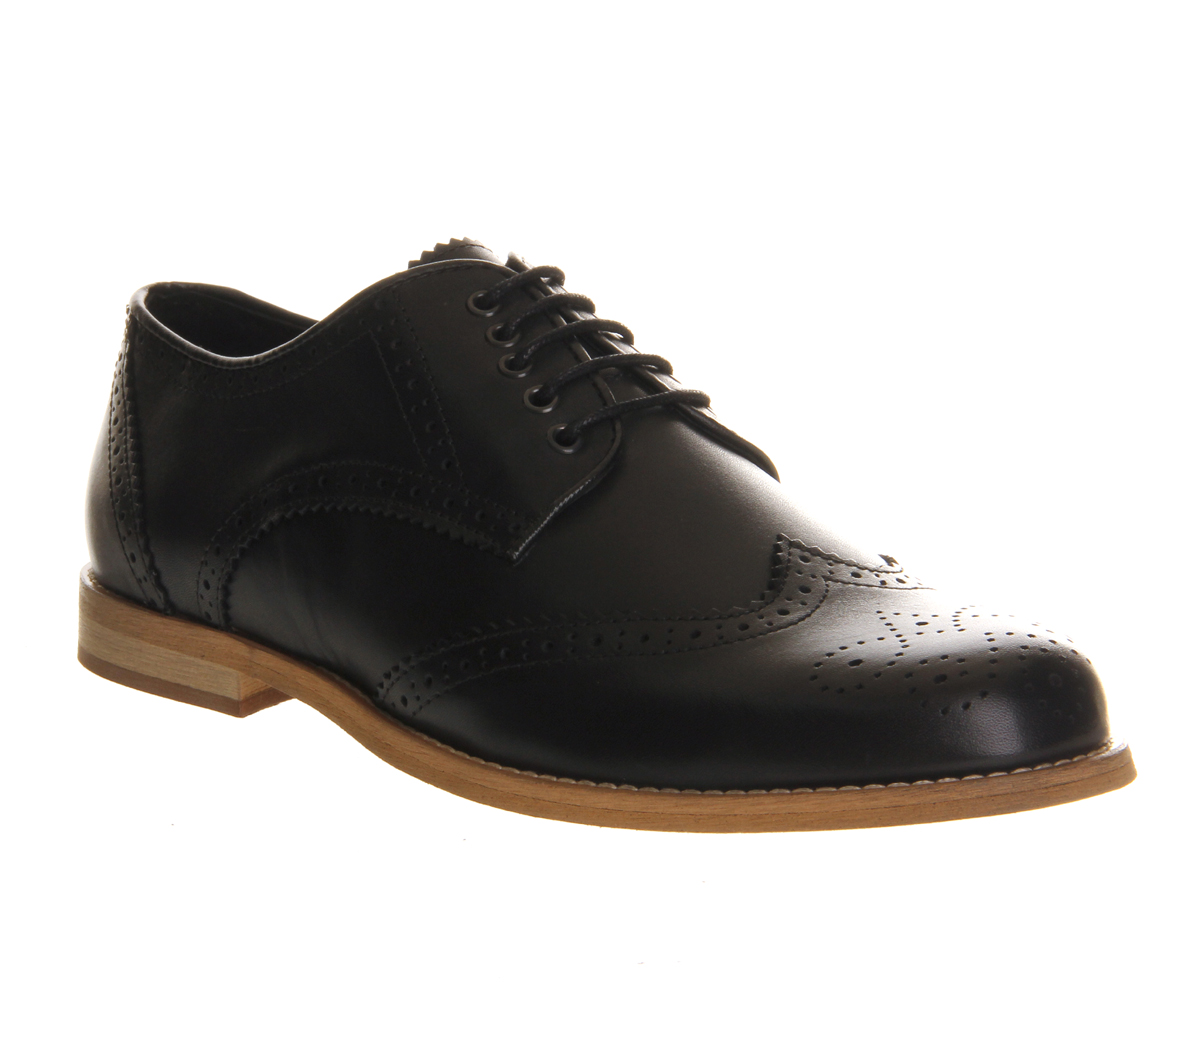 Mens Ask the Missus Cardinal Lace Up Brogues BLACK LEATHER Formal Shoes